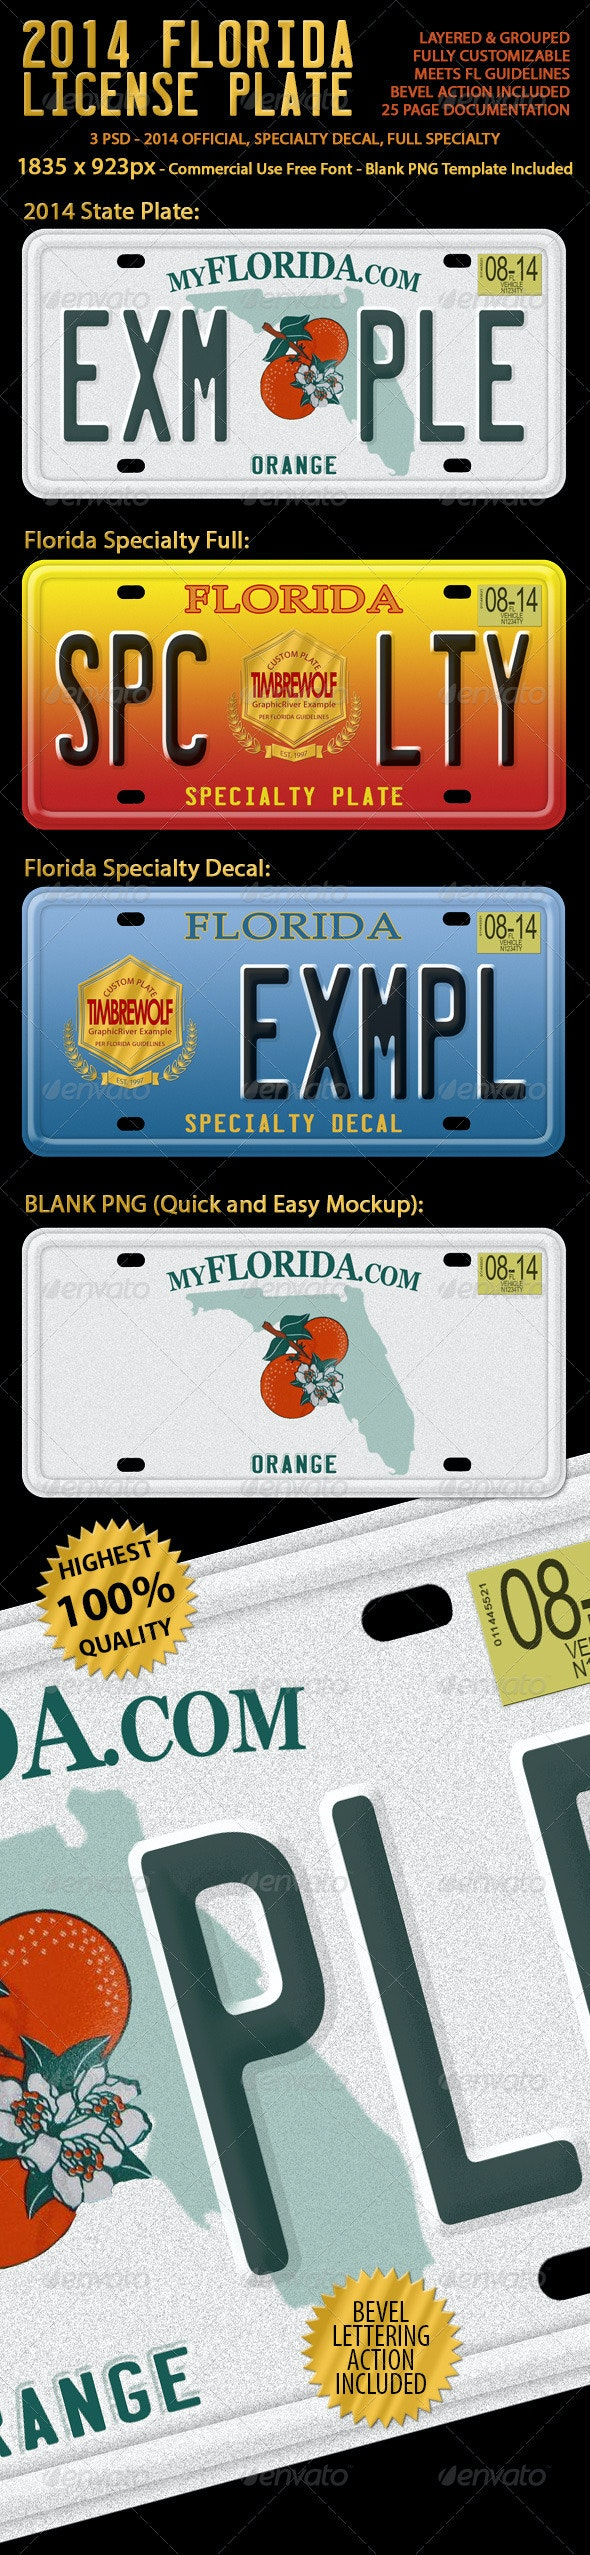 2014 Florida License Plate (3 Versions) - Objects Illustrations